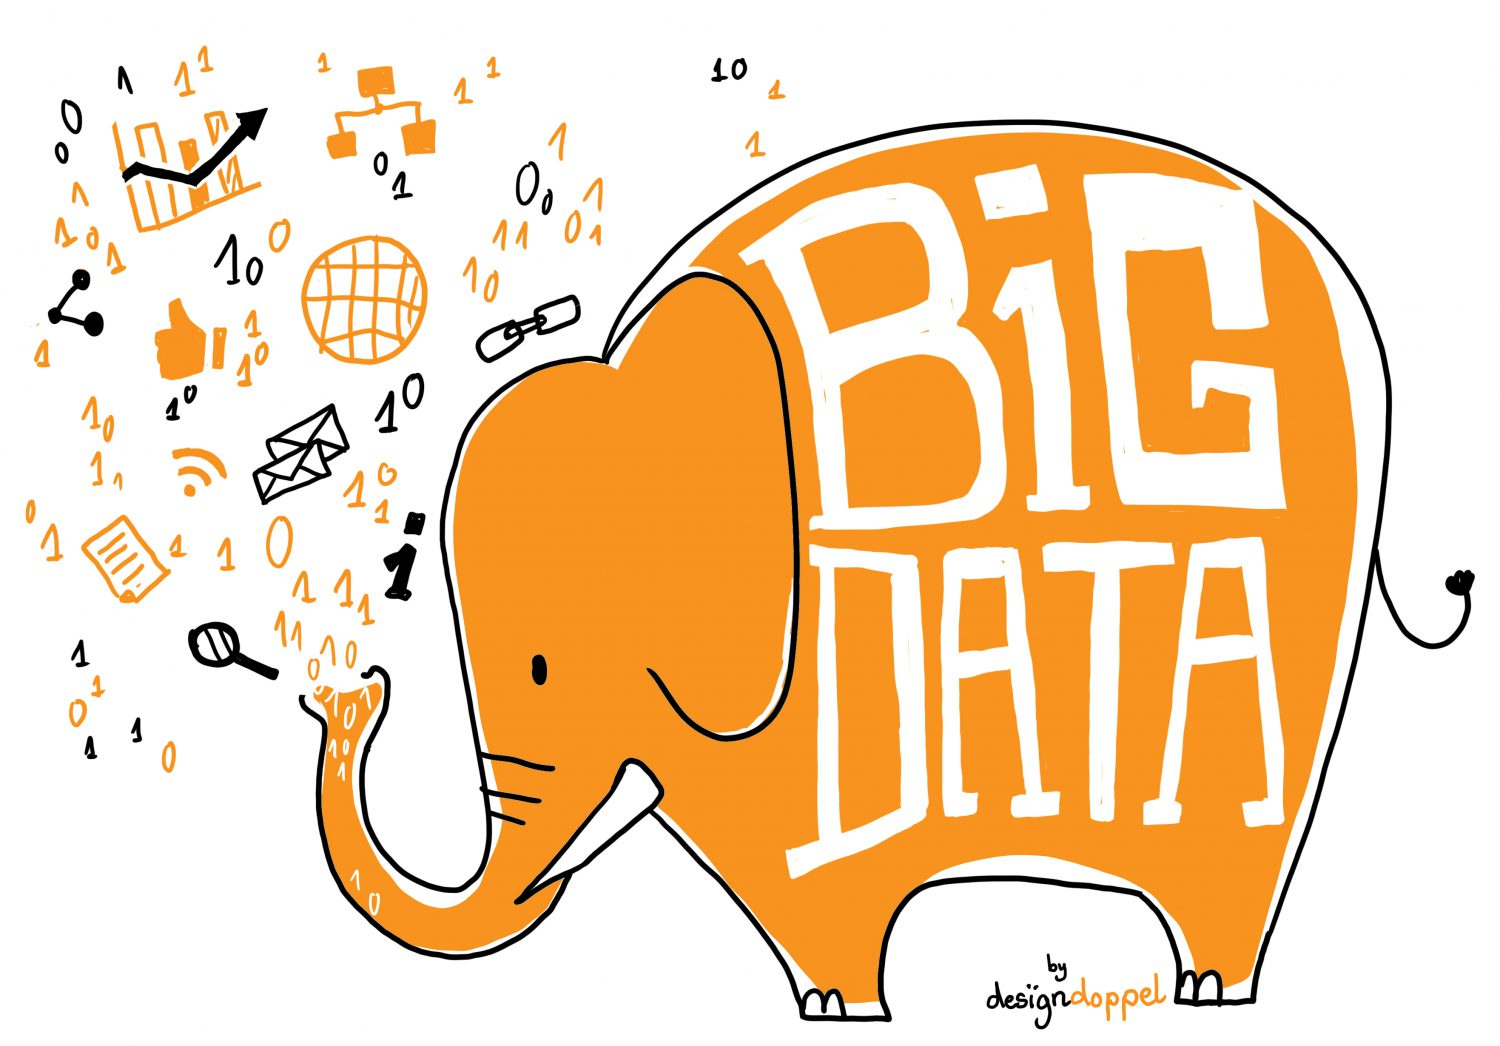 Big Data Illustration Designdoppel Visualisierung Daten Elefant